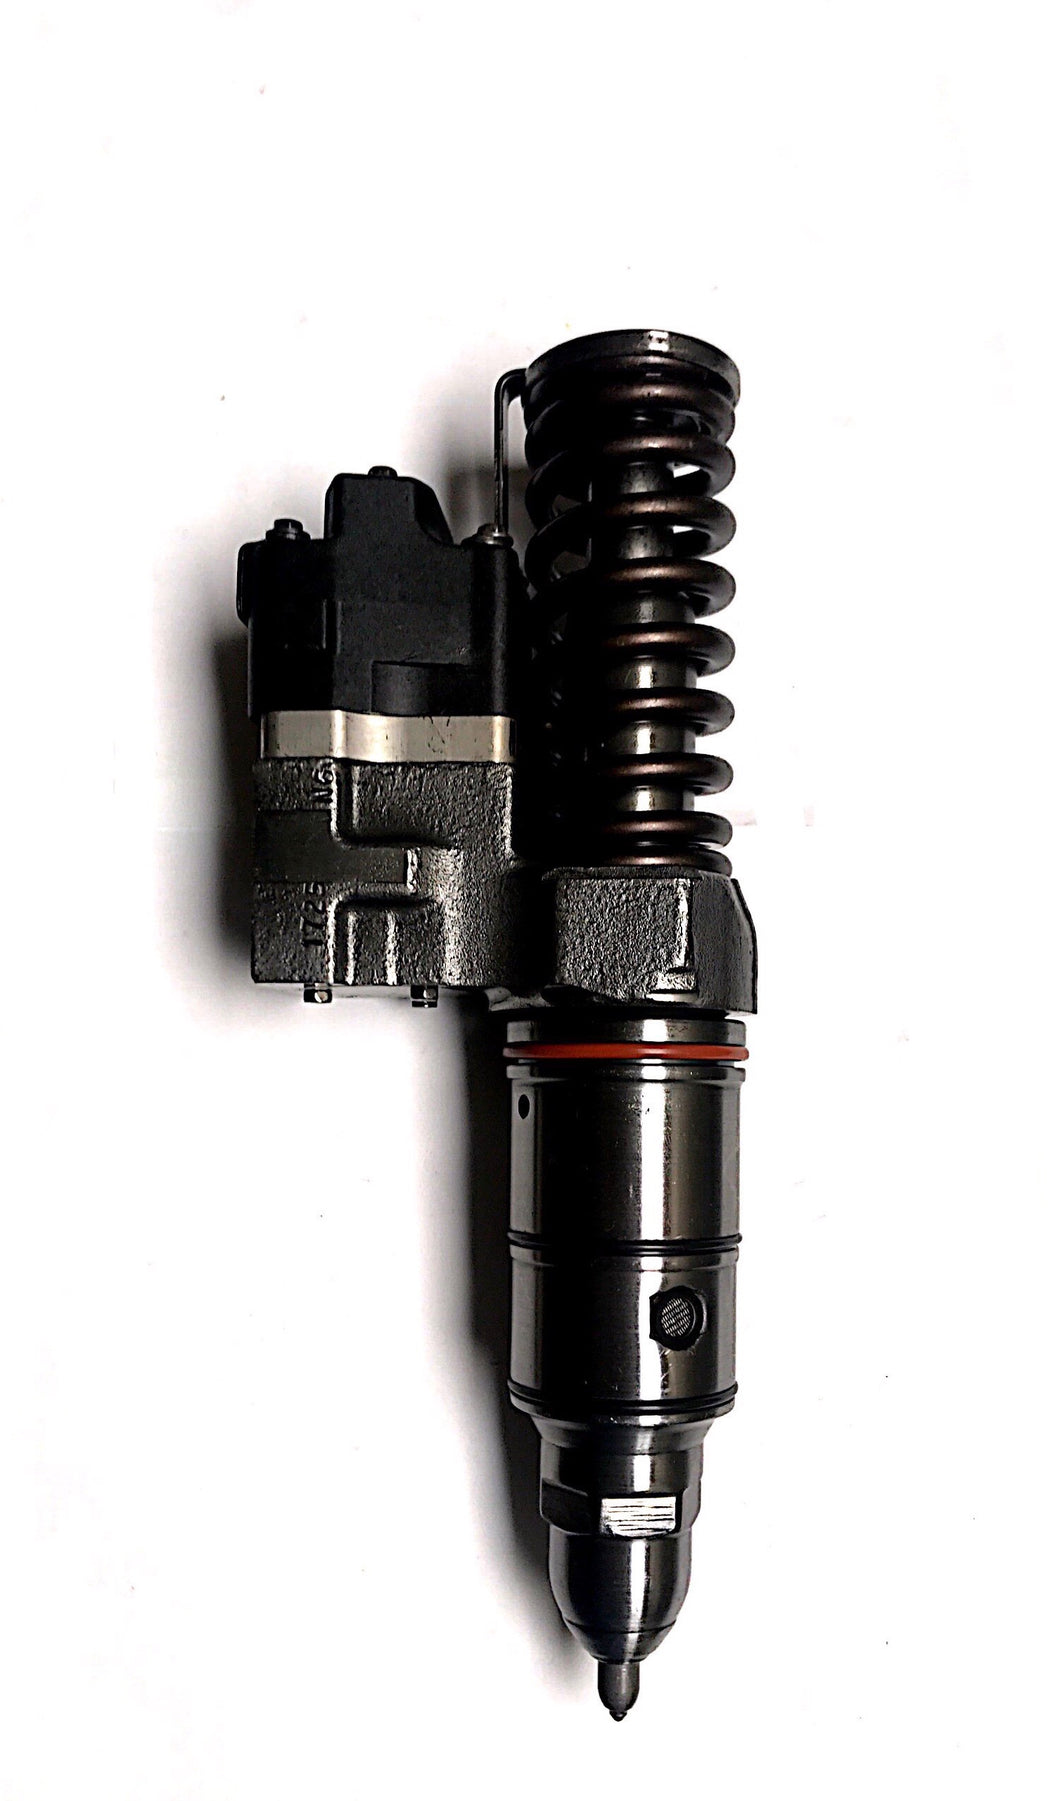 5237787 DETROIT INJECTOR| S-60| (REMANUFACTURED)